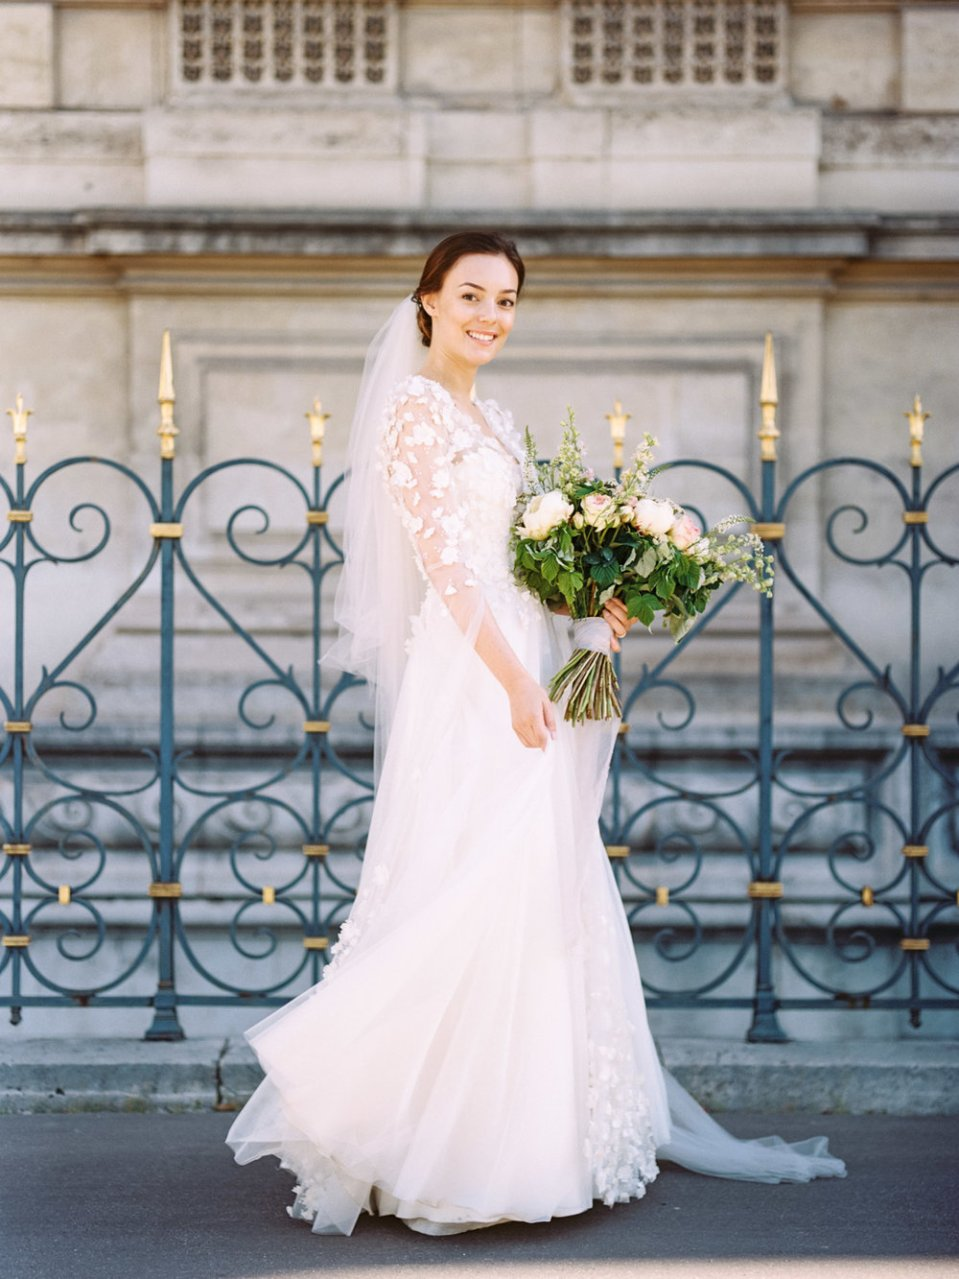 Destination Fine Art Wedding Editorial Photography in Paris with Max Chaoul -40.jpg